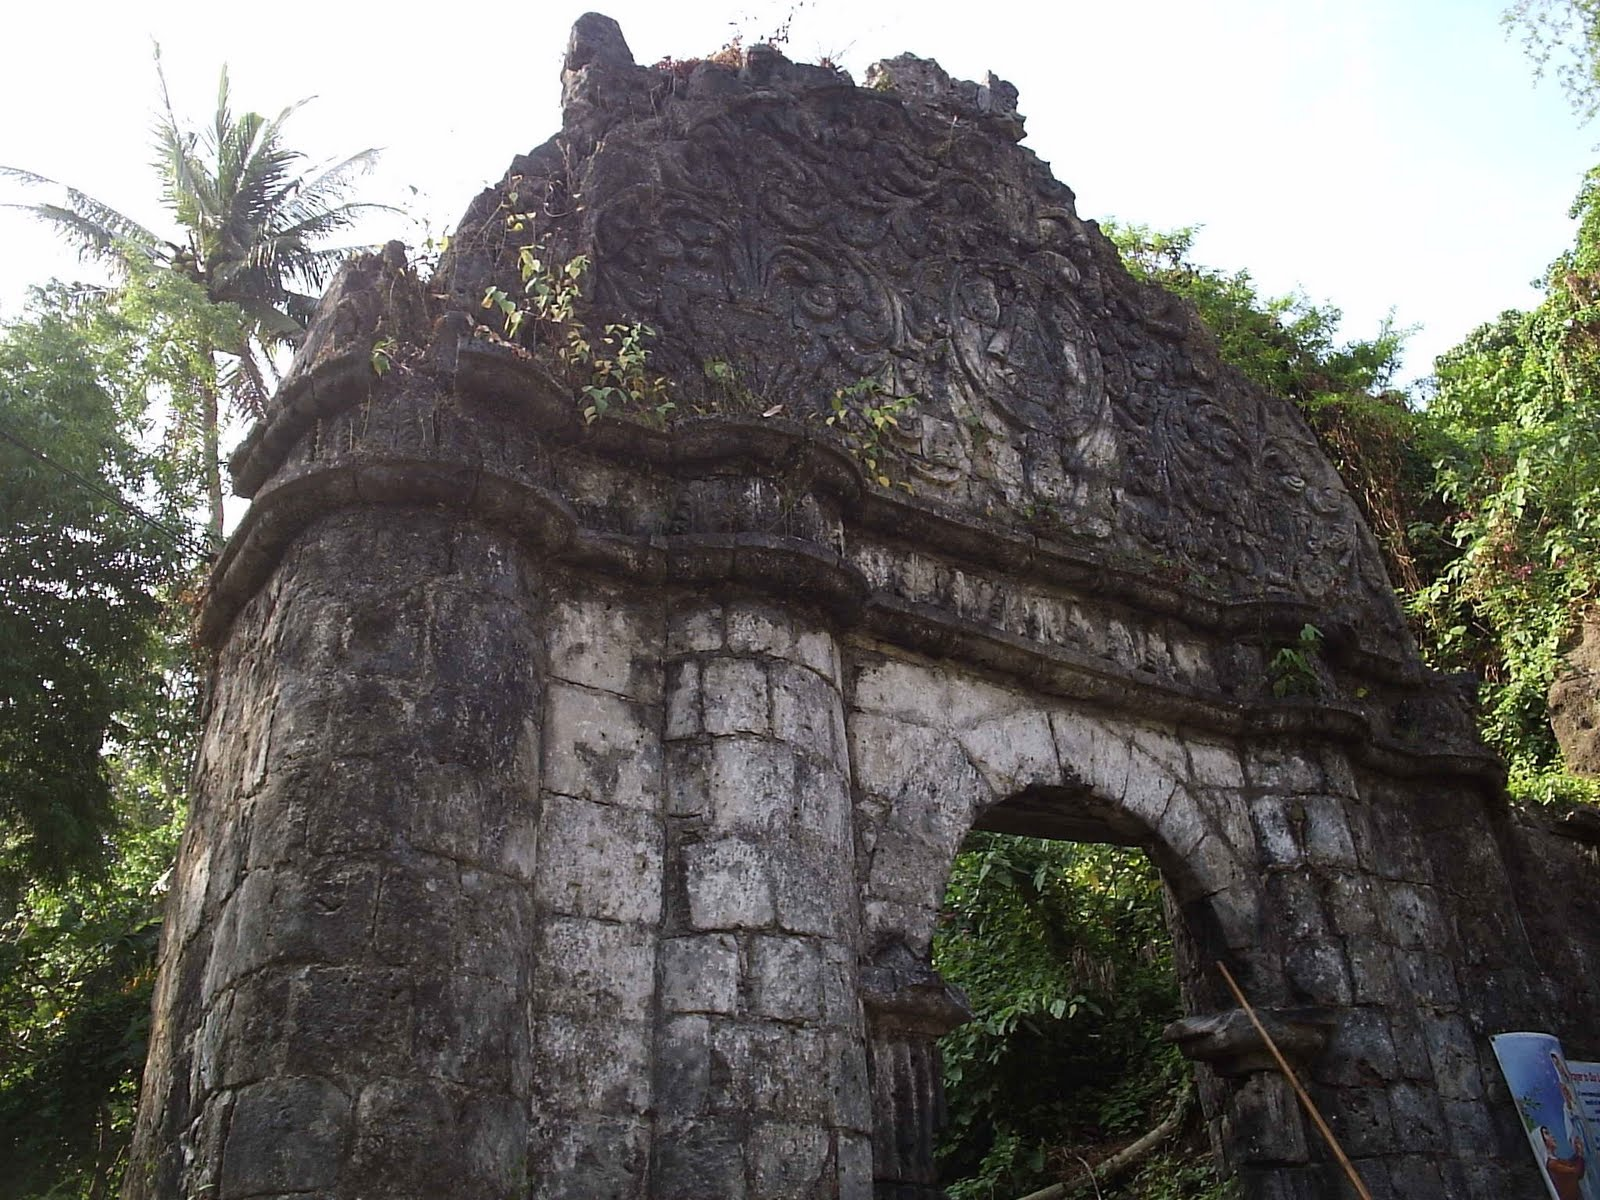 Soulful travels: Taal Batangas: History Book Come to Life